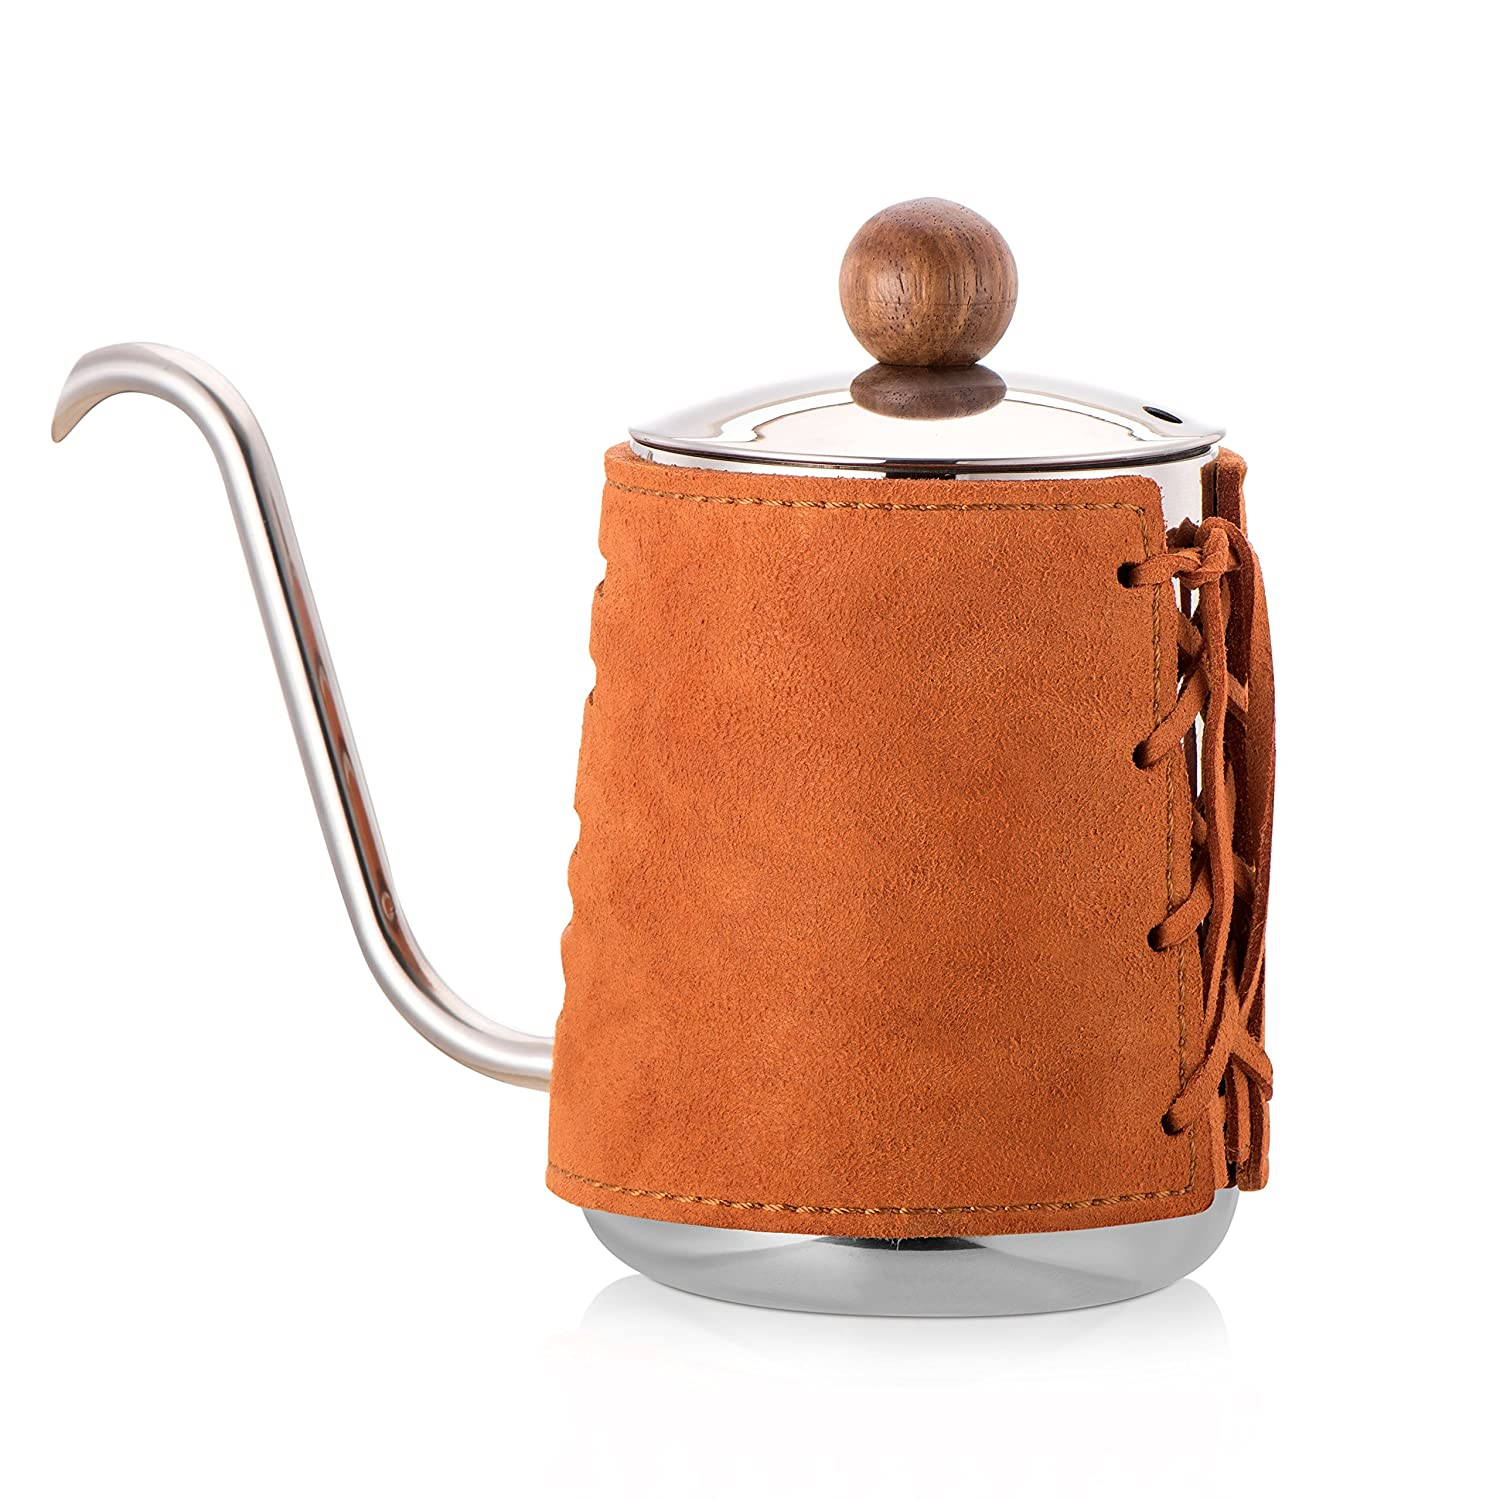 Diguo Pour Over Coffee Kettle Premium Quality Stainless Steel Hand Drip Kettle with Authentic Leather Wrapped, Gooseneck, (Black, 300ml)